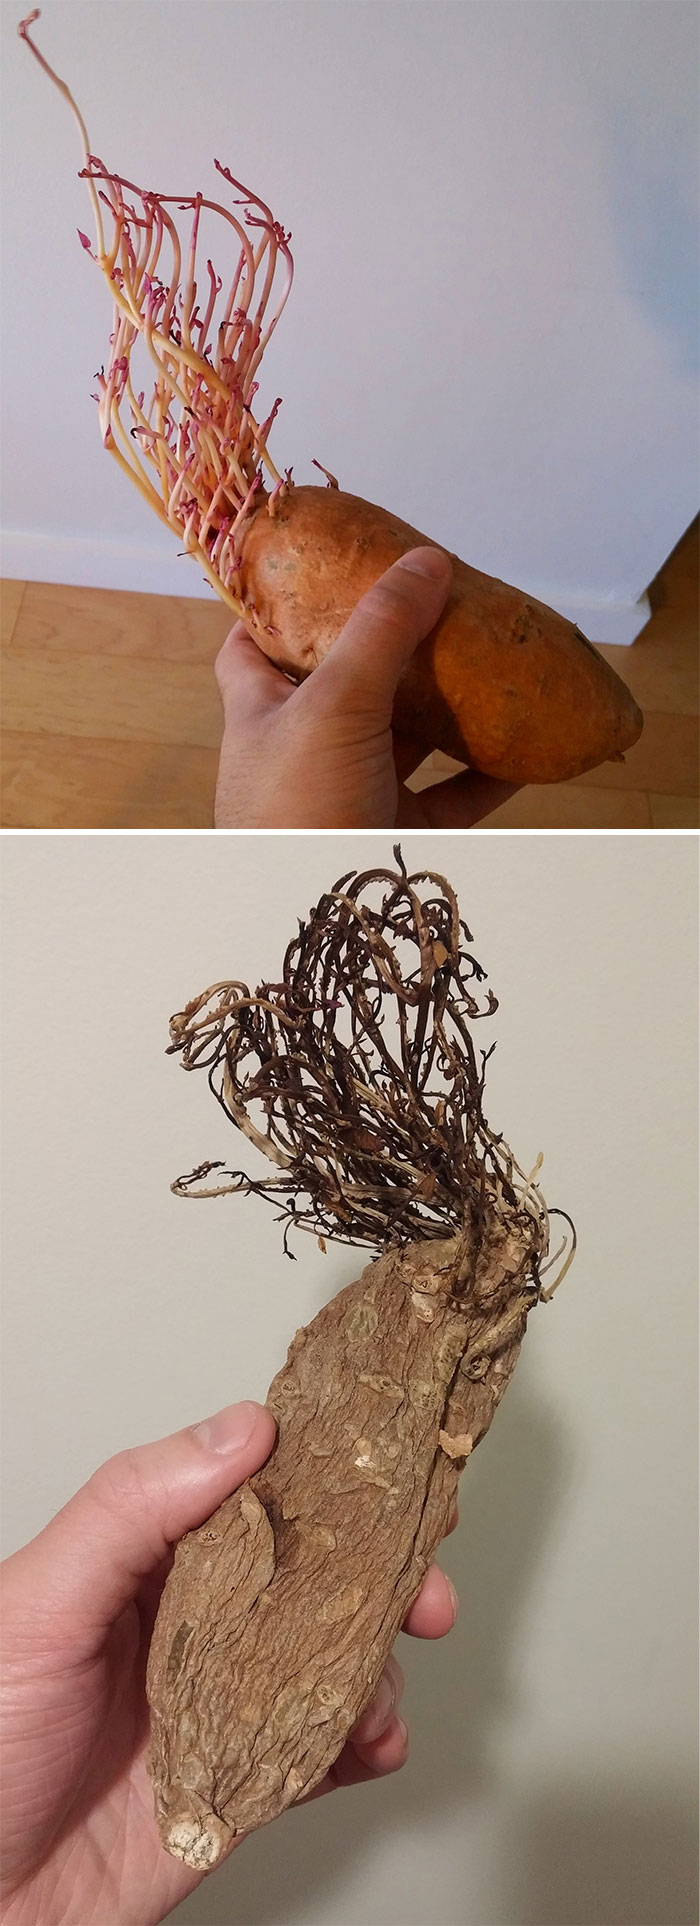 Left A Sprouting Sweet Potato In My Cupboard For A Little Over A Year. Here Are The Results.